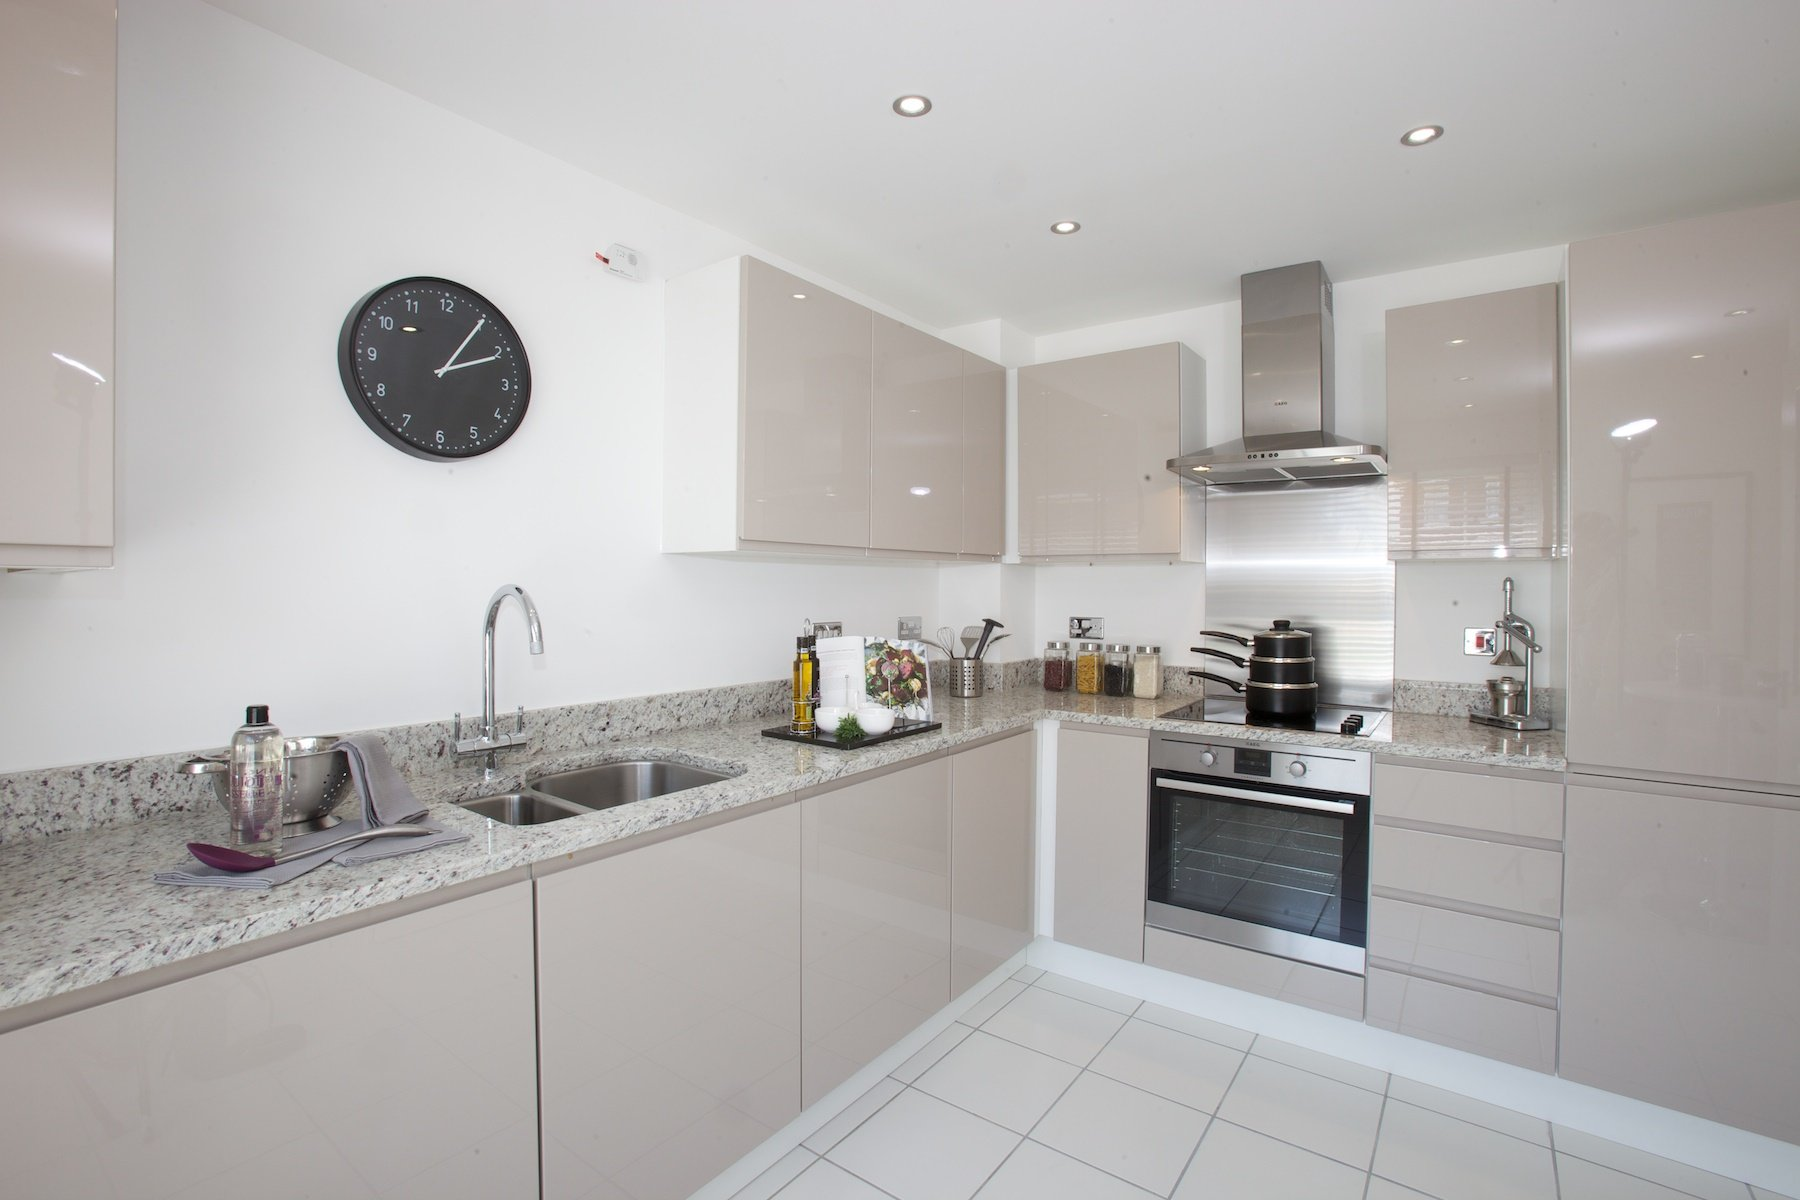 Kings Copse show home - Kitchen/breakfast area